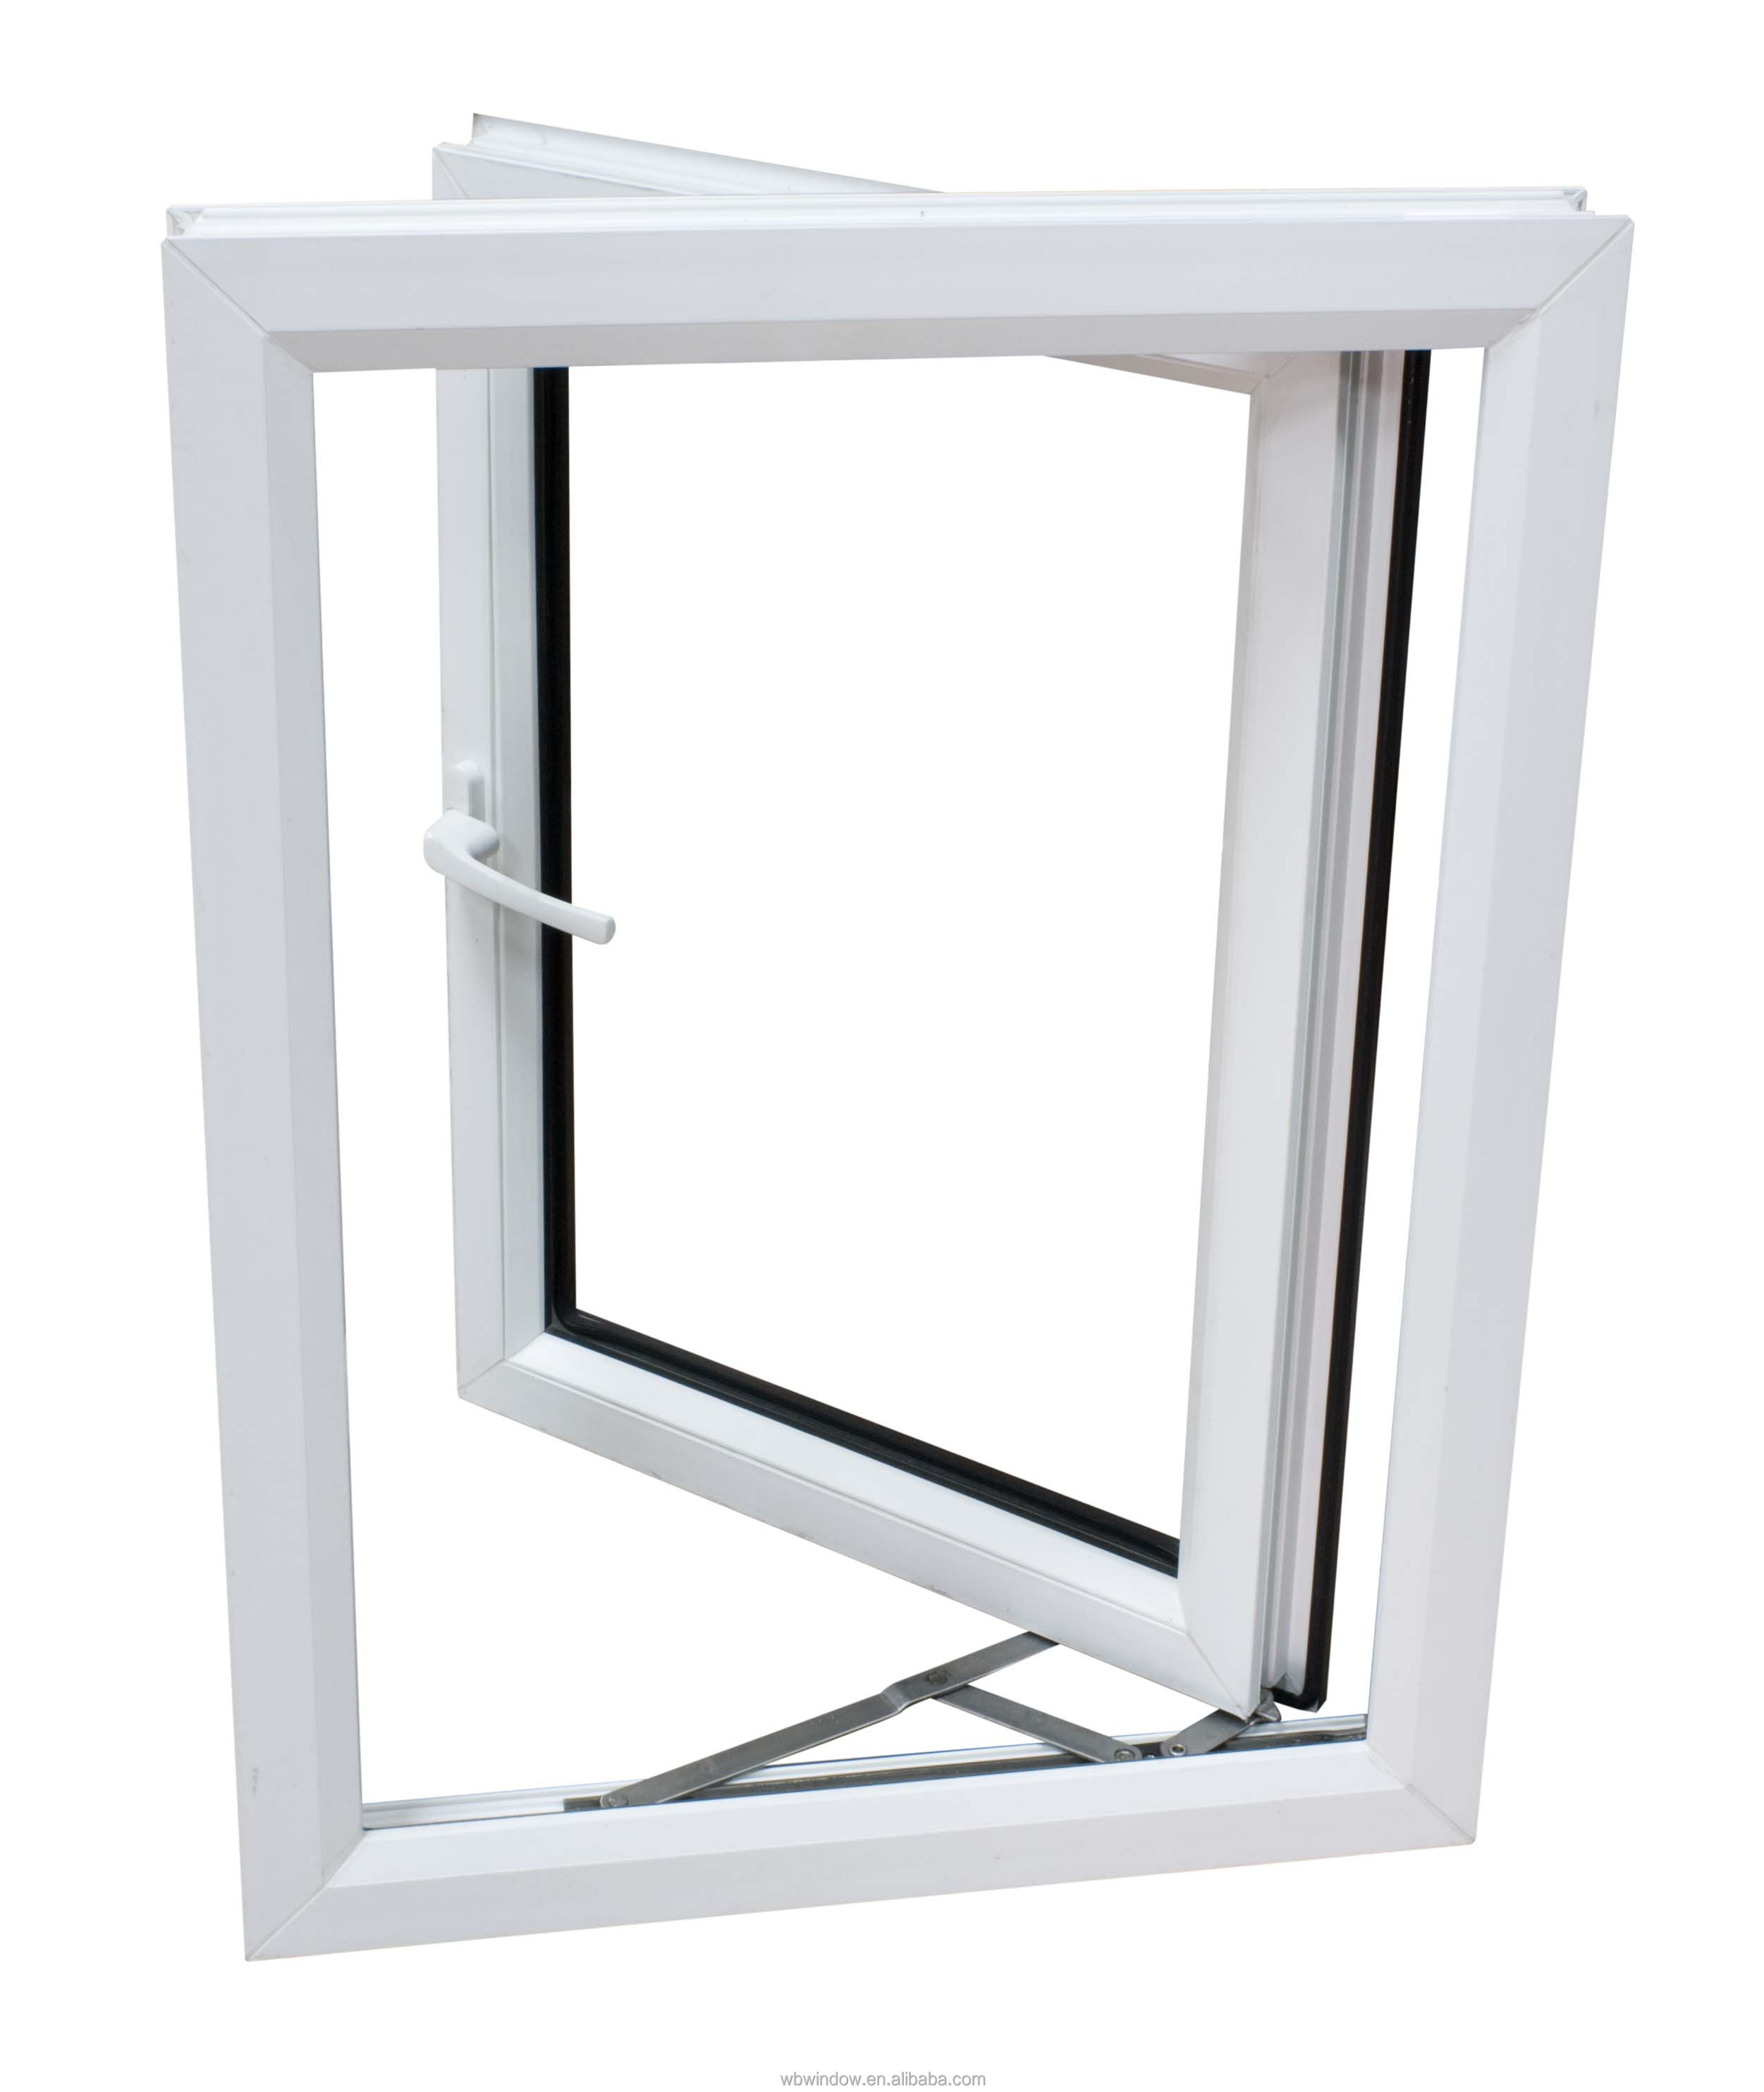 Single Casement Window : Small pvc single pane casement window for the bathroom